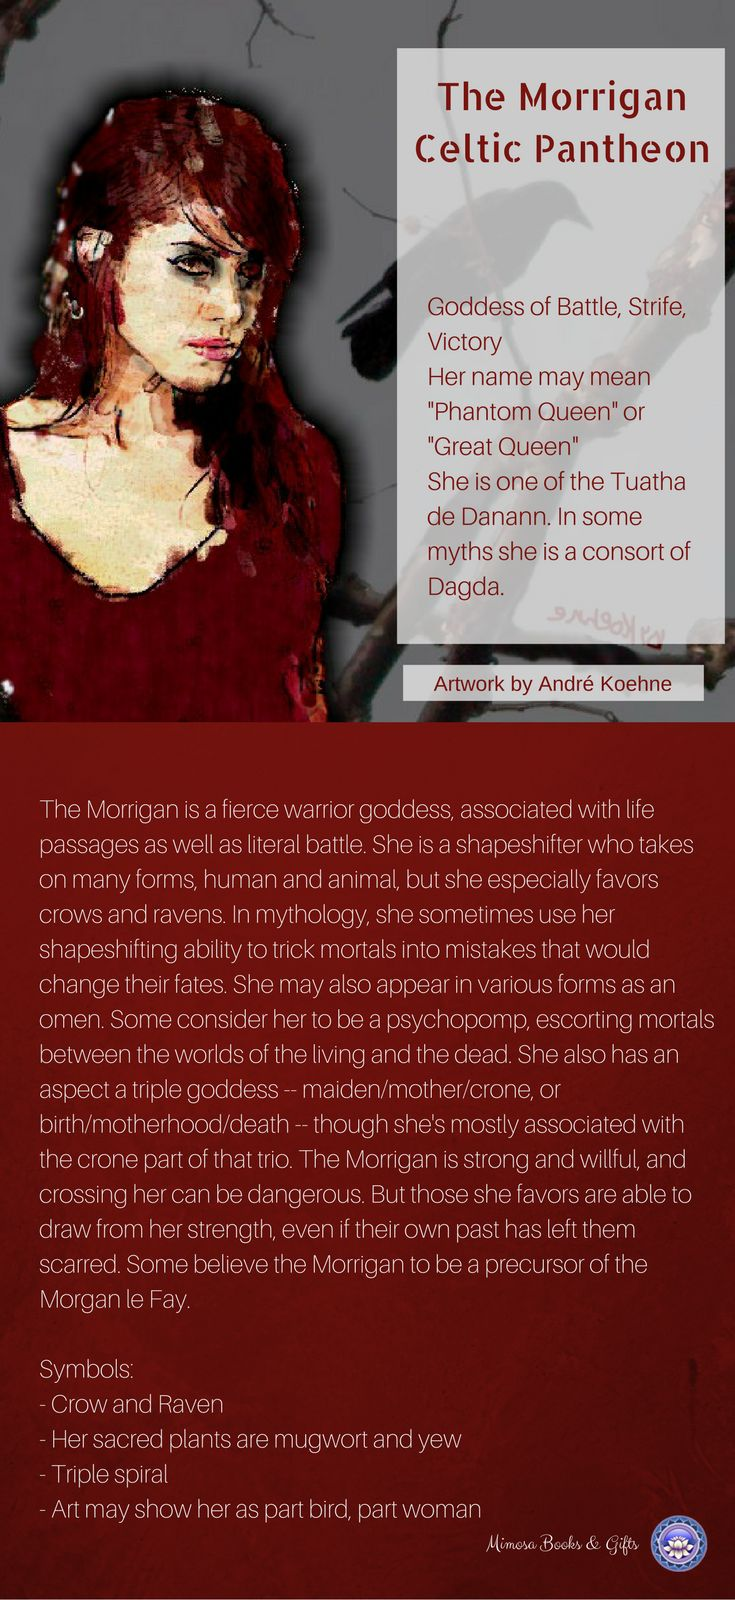 The Morrigan - Mimosa Books & Gifts